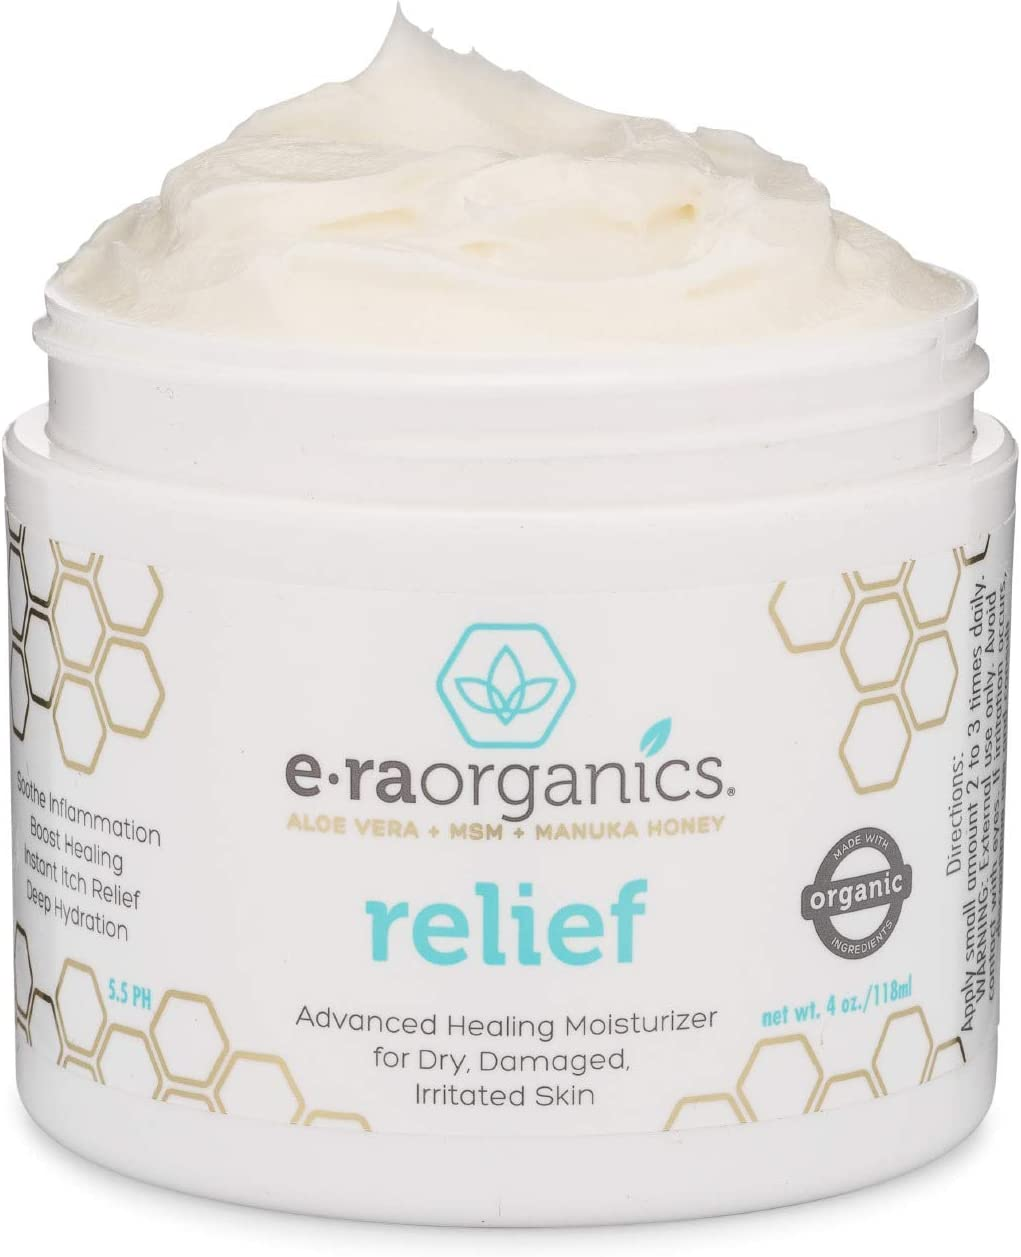 Natural Cream for Eczema, Psoriasis & Dermatitis - Advanced Healing 15-in-1 Non-Greasy Moisturizer with Aloe Vera, Manuka Honey & More. Natural Eczema Cream for Dry Itchy Skin Care 4oz Era-Organics